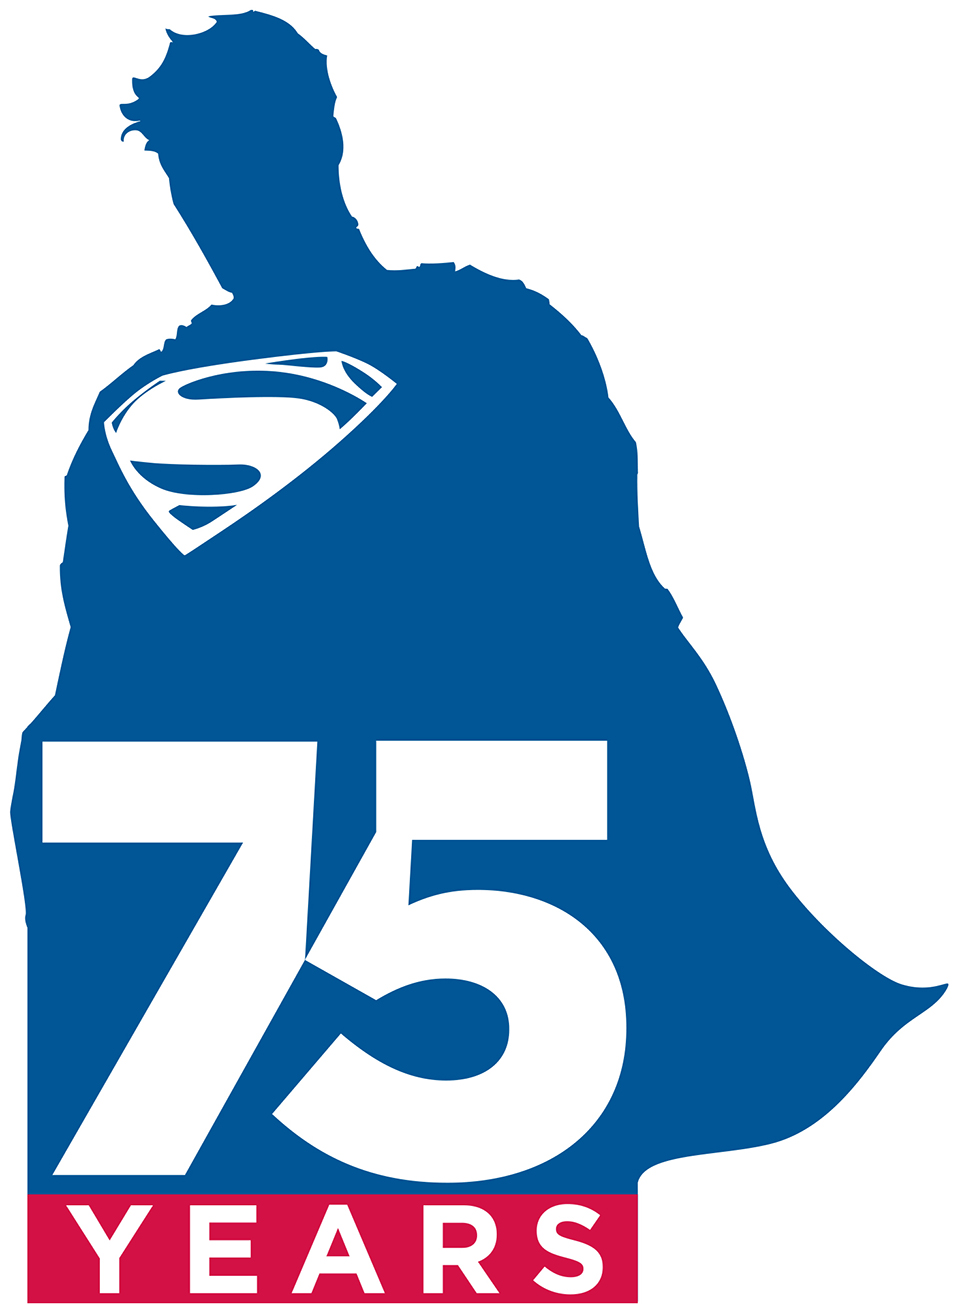 Superman 75th Anniv. Short Film